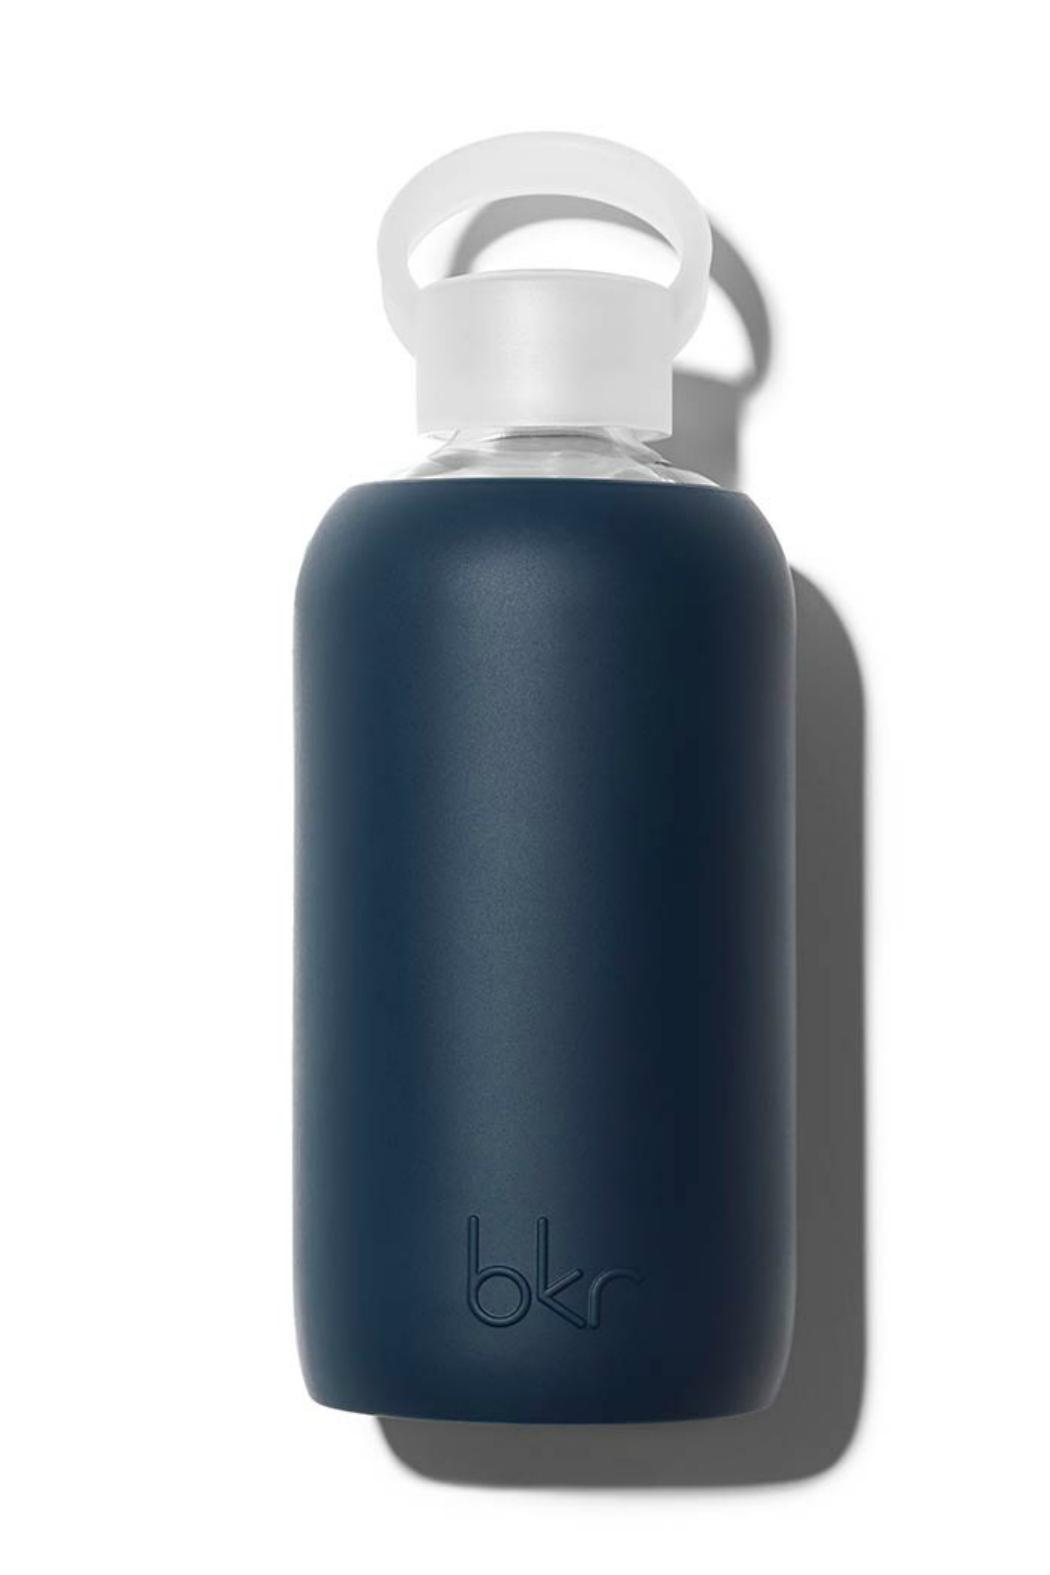 Bkr Ryan Water Bottle From Indiana By Idlehour Shoptiques